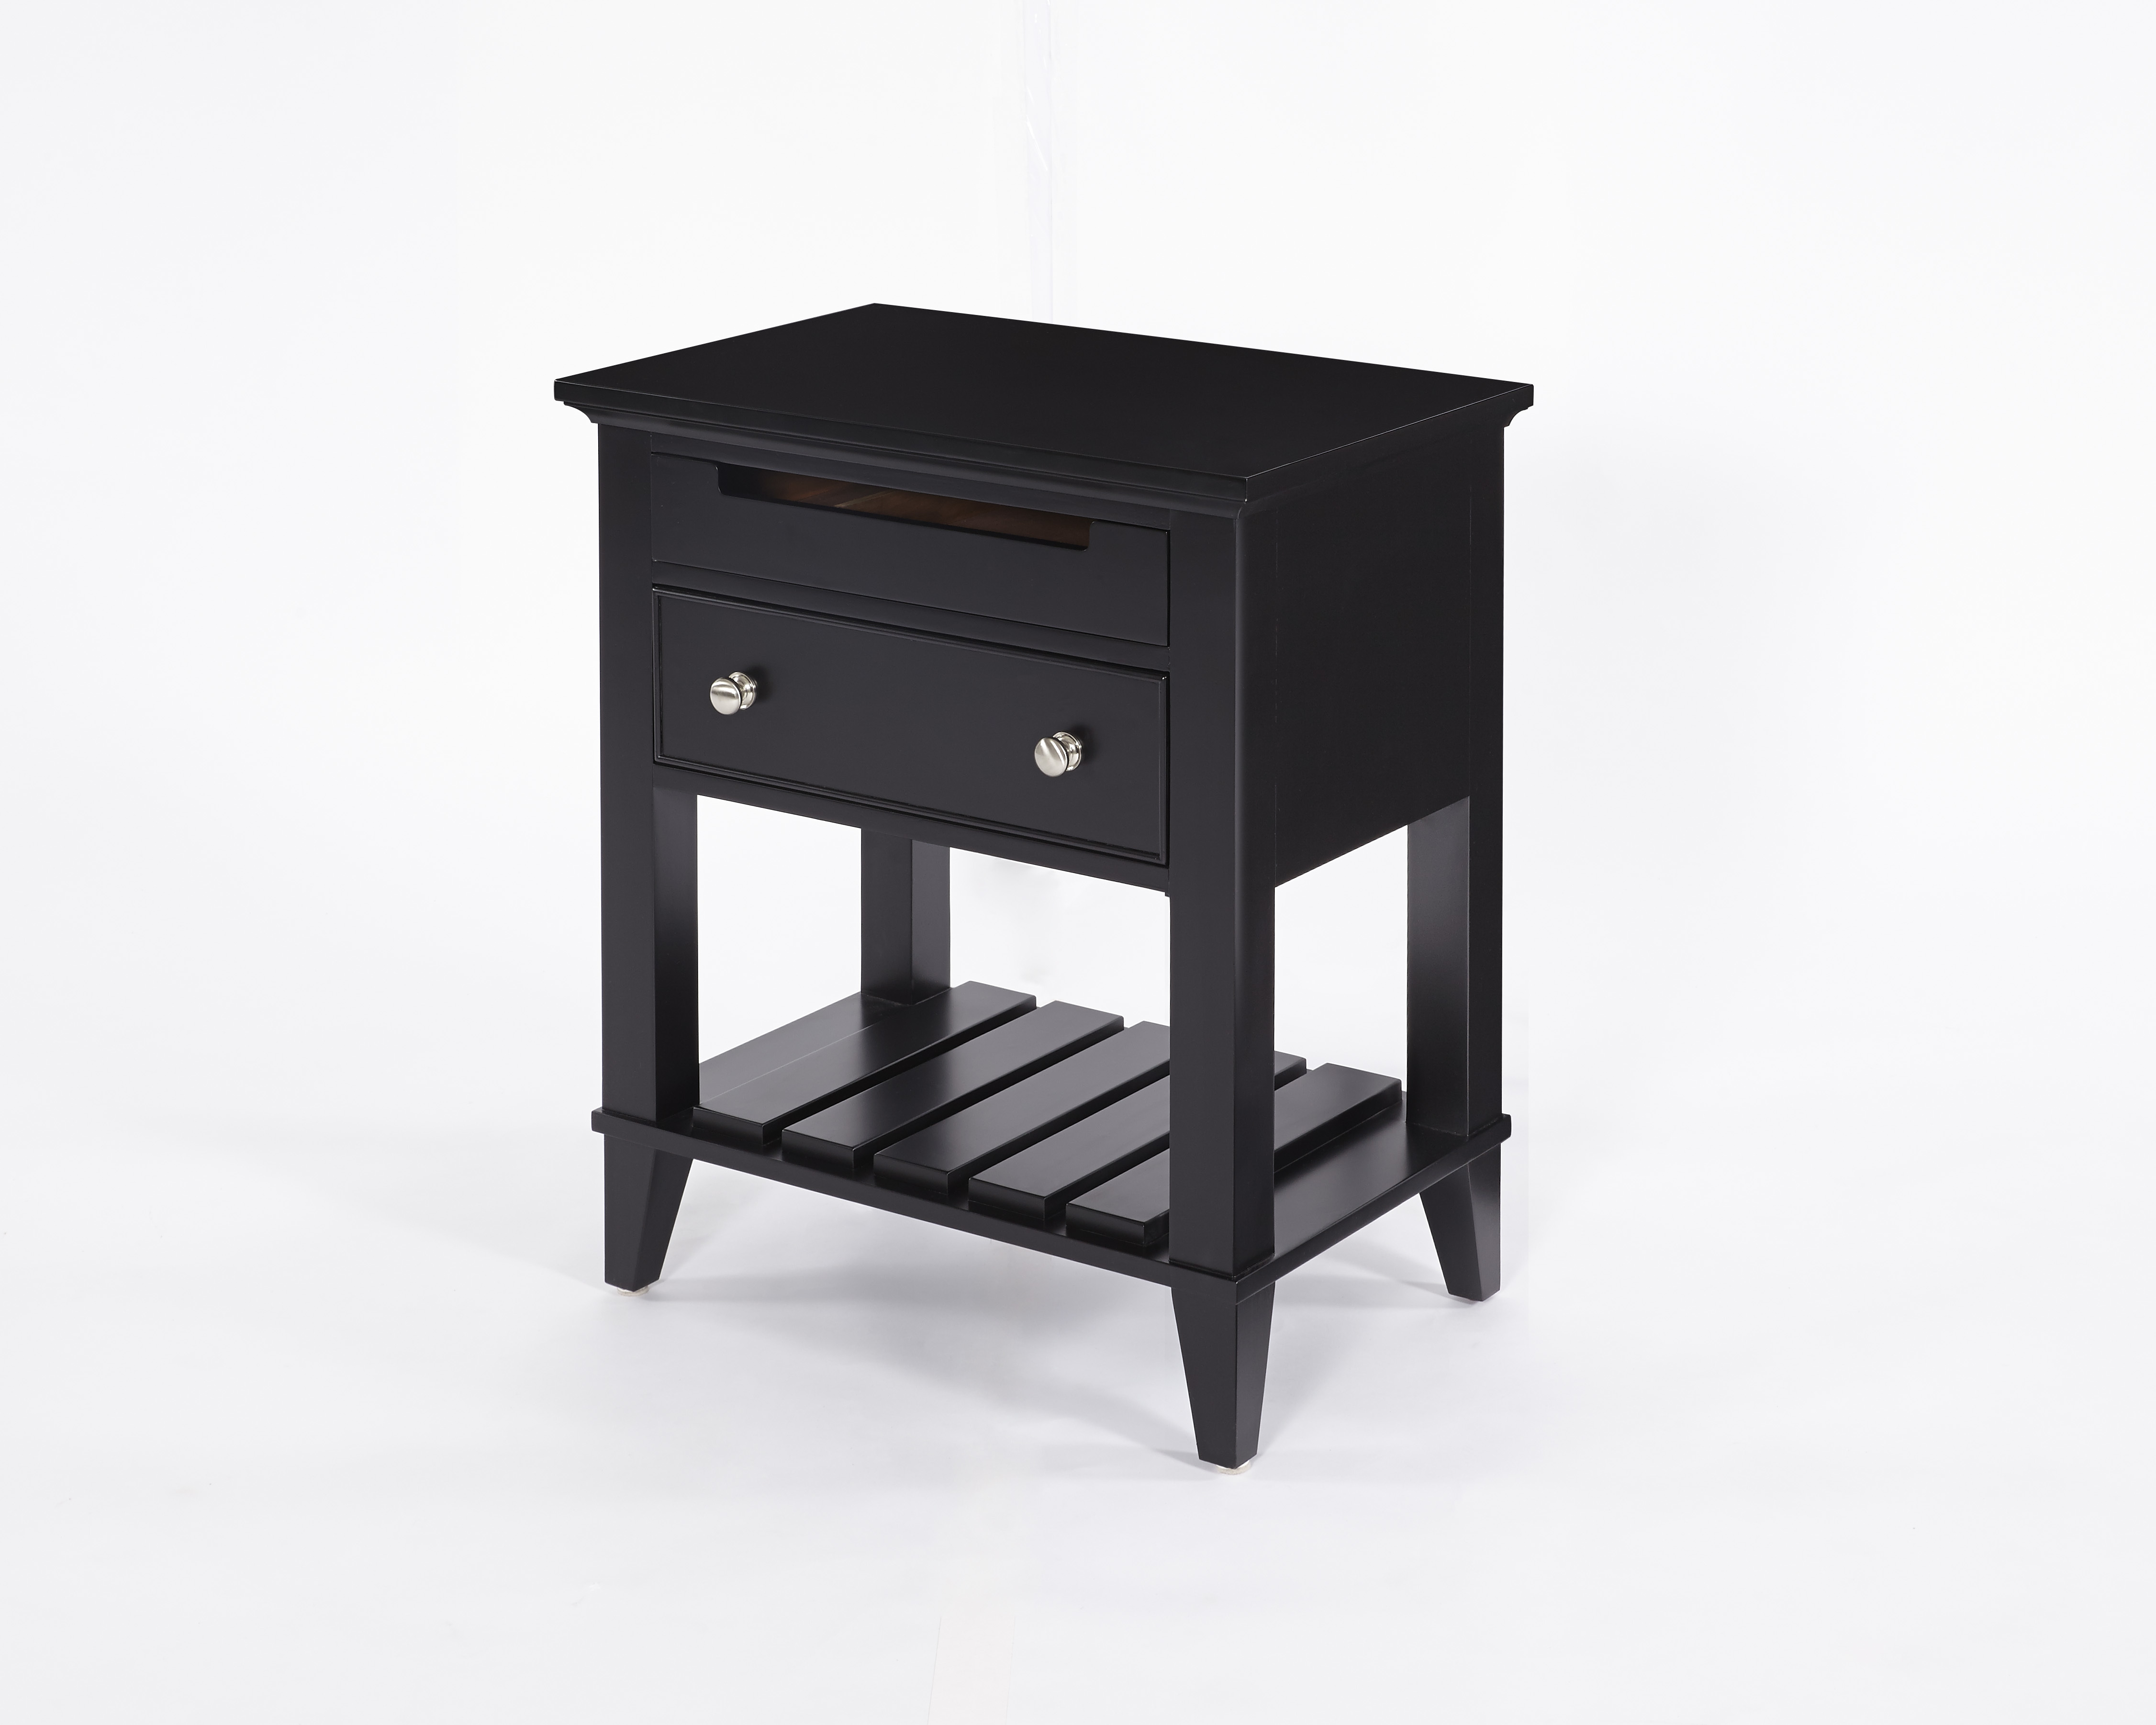 furniture small tall nightstand drawer malm side two with shelf night stand ikea table prepac accent white while true that heavy sleeper mattress might make difficult get out the